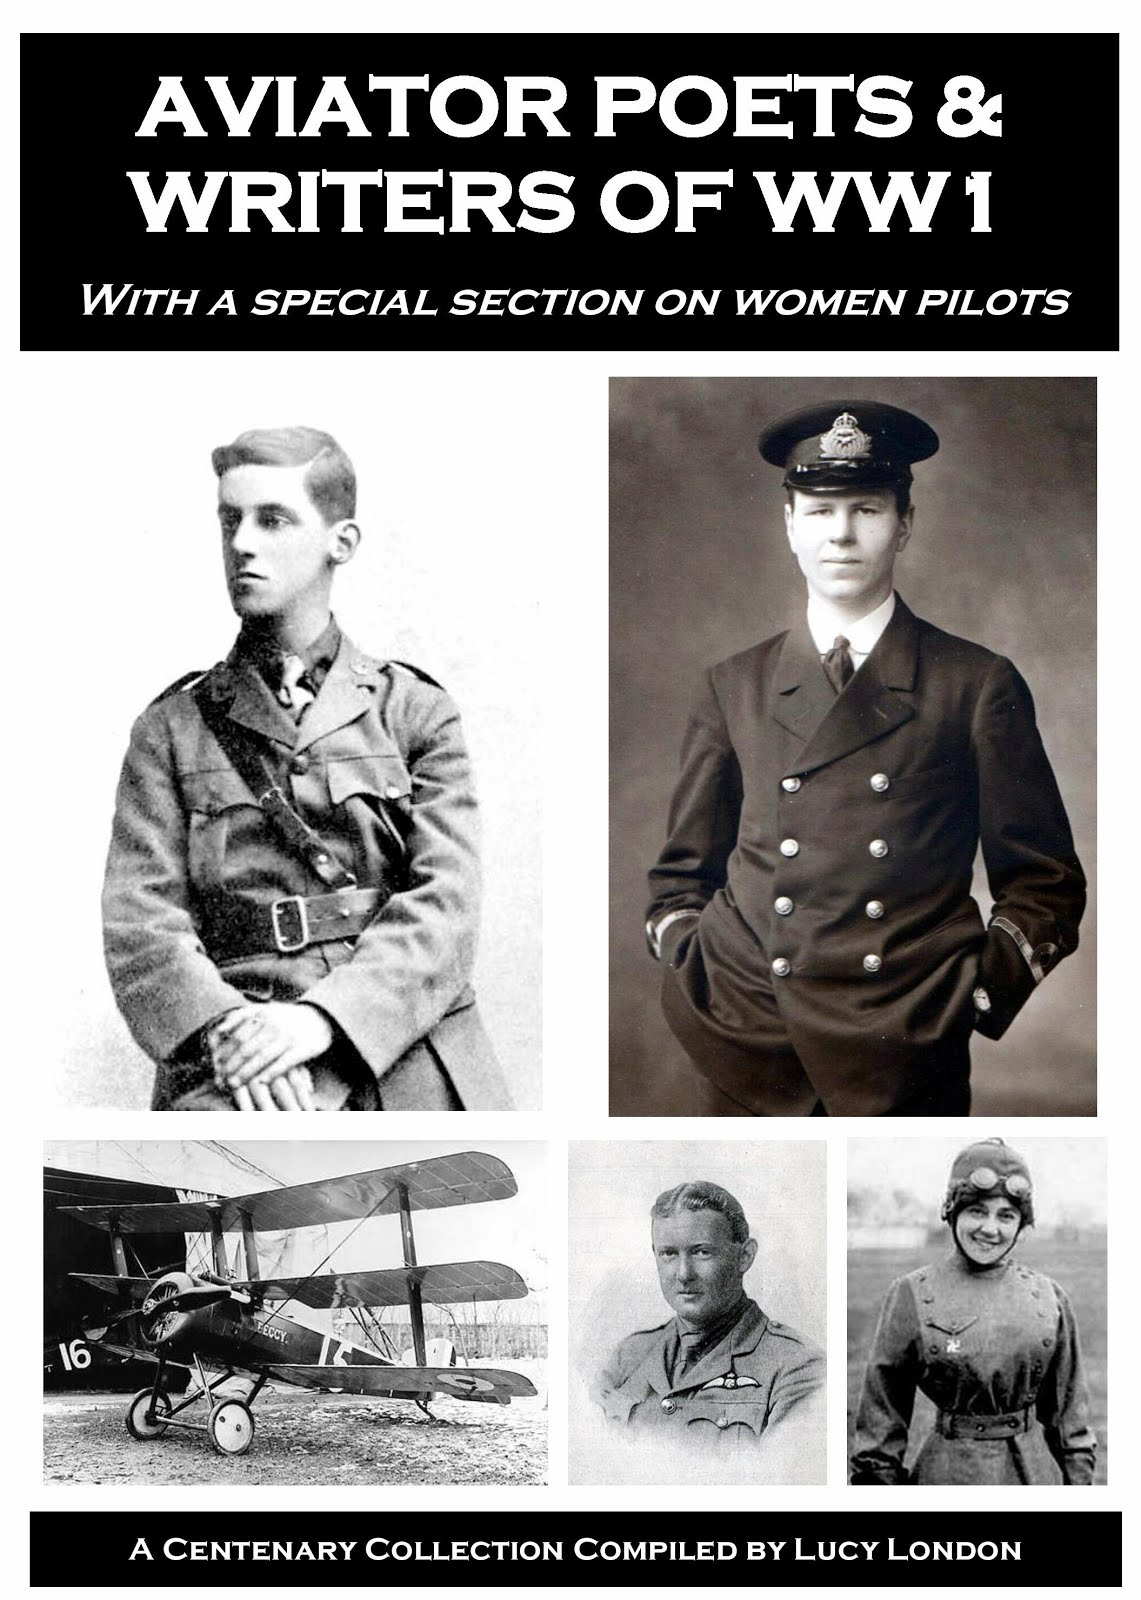 Aviator Poets & Writers of WW1 - Now Available